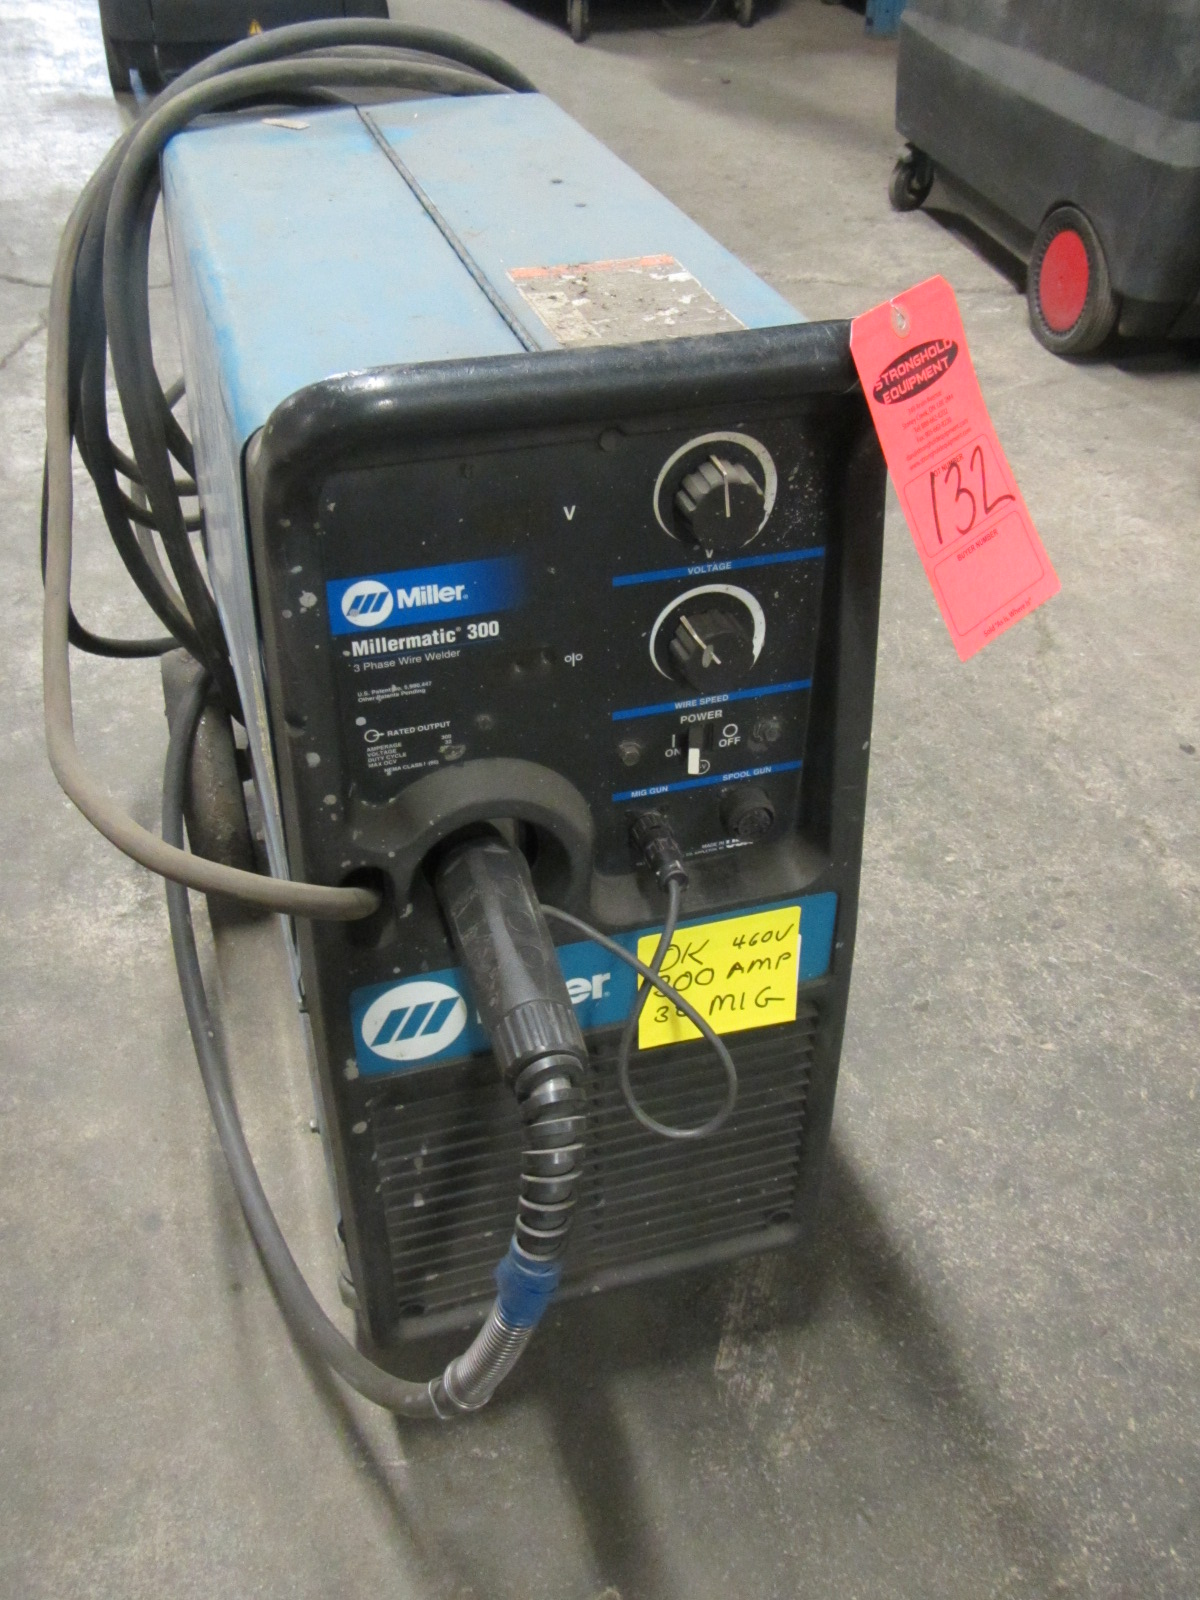 Miller Millermatic 300 Mig Welder Amp With Gun Built Wiring A Lot 132 In